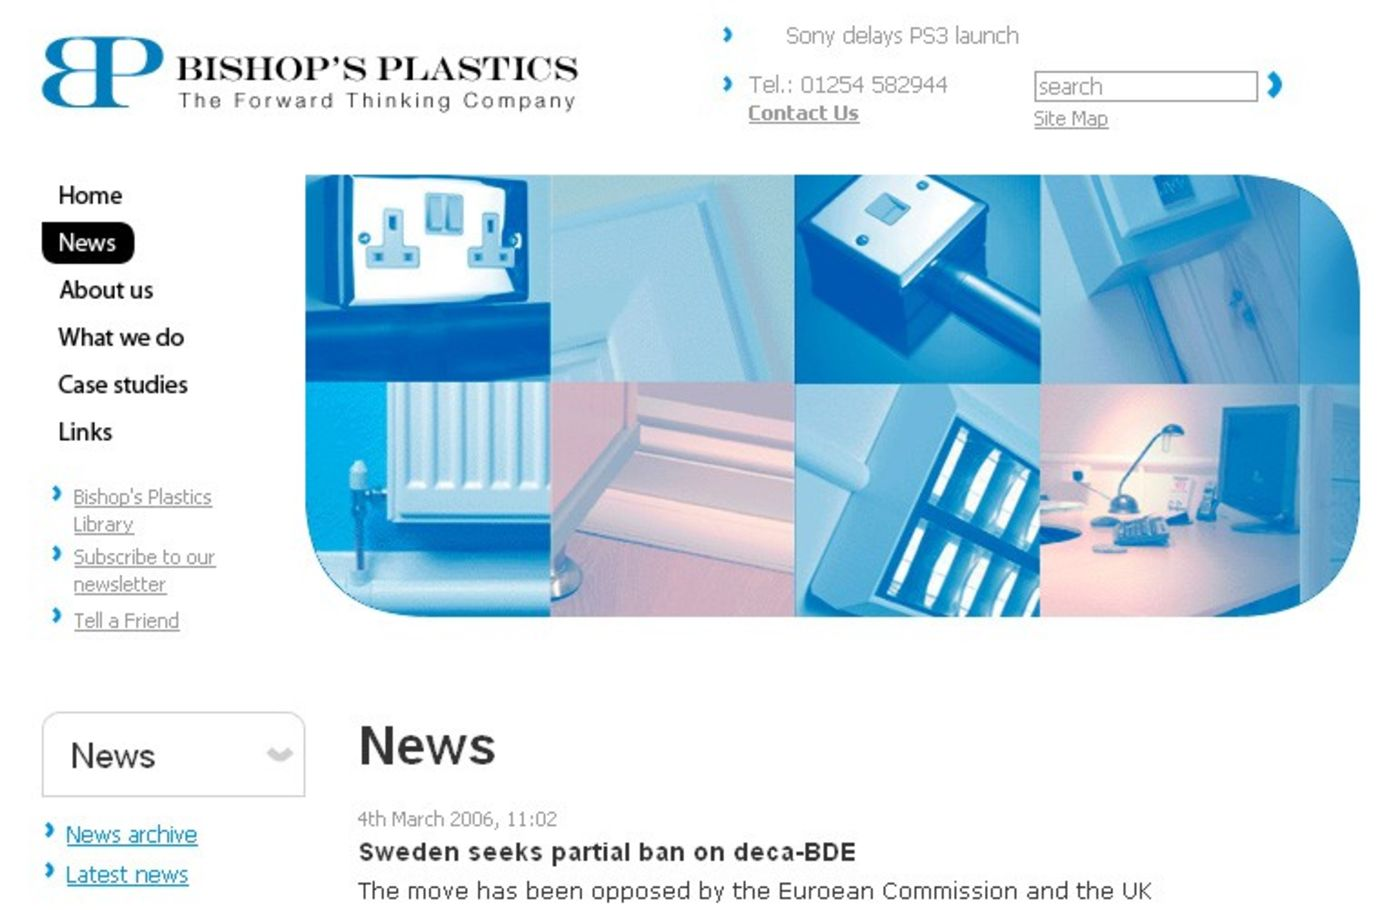 Bishop's Plastics News